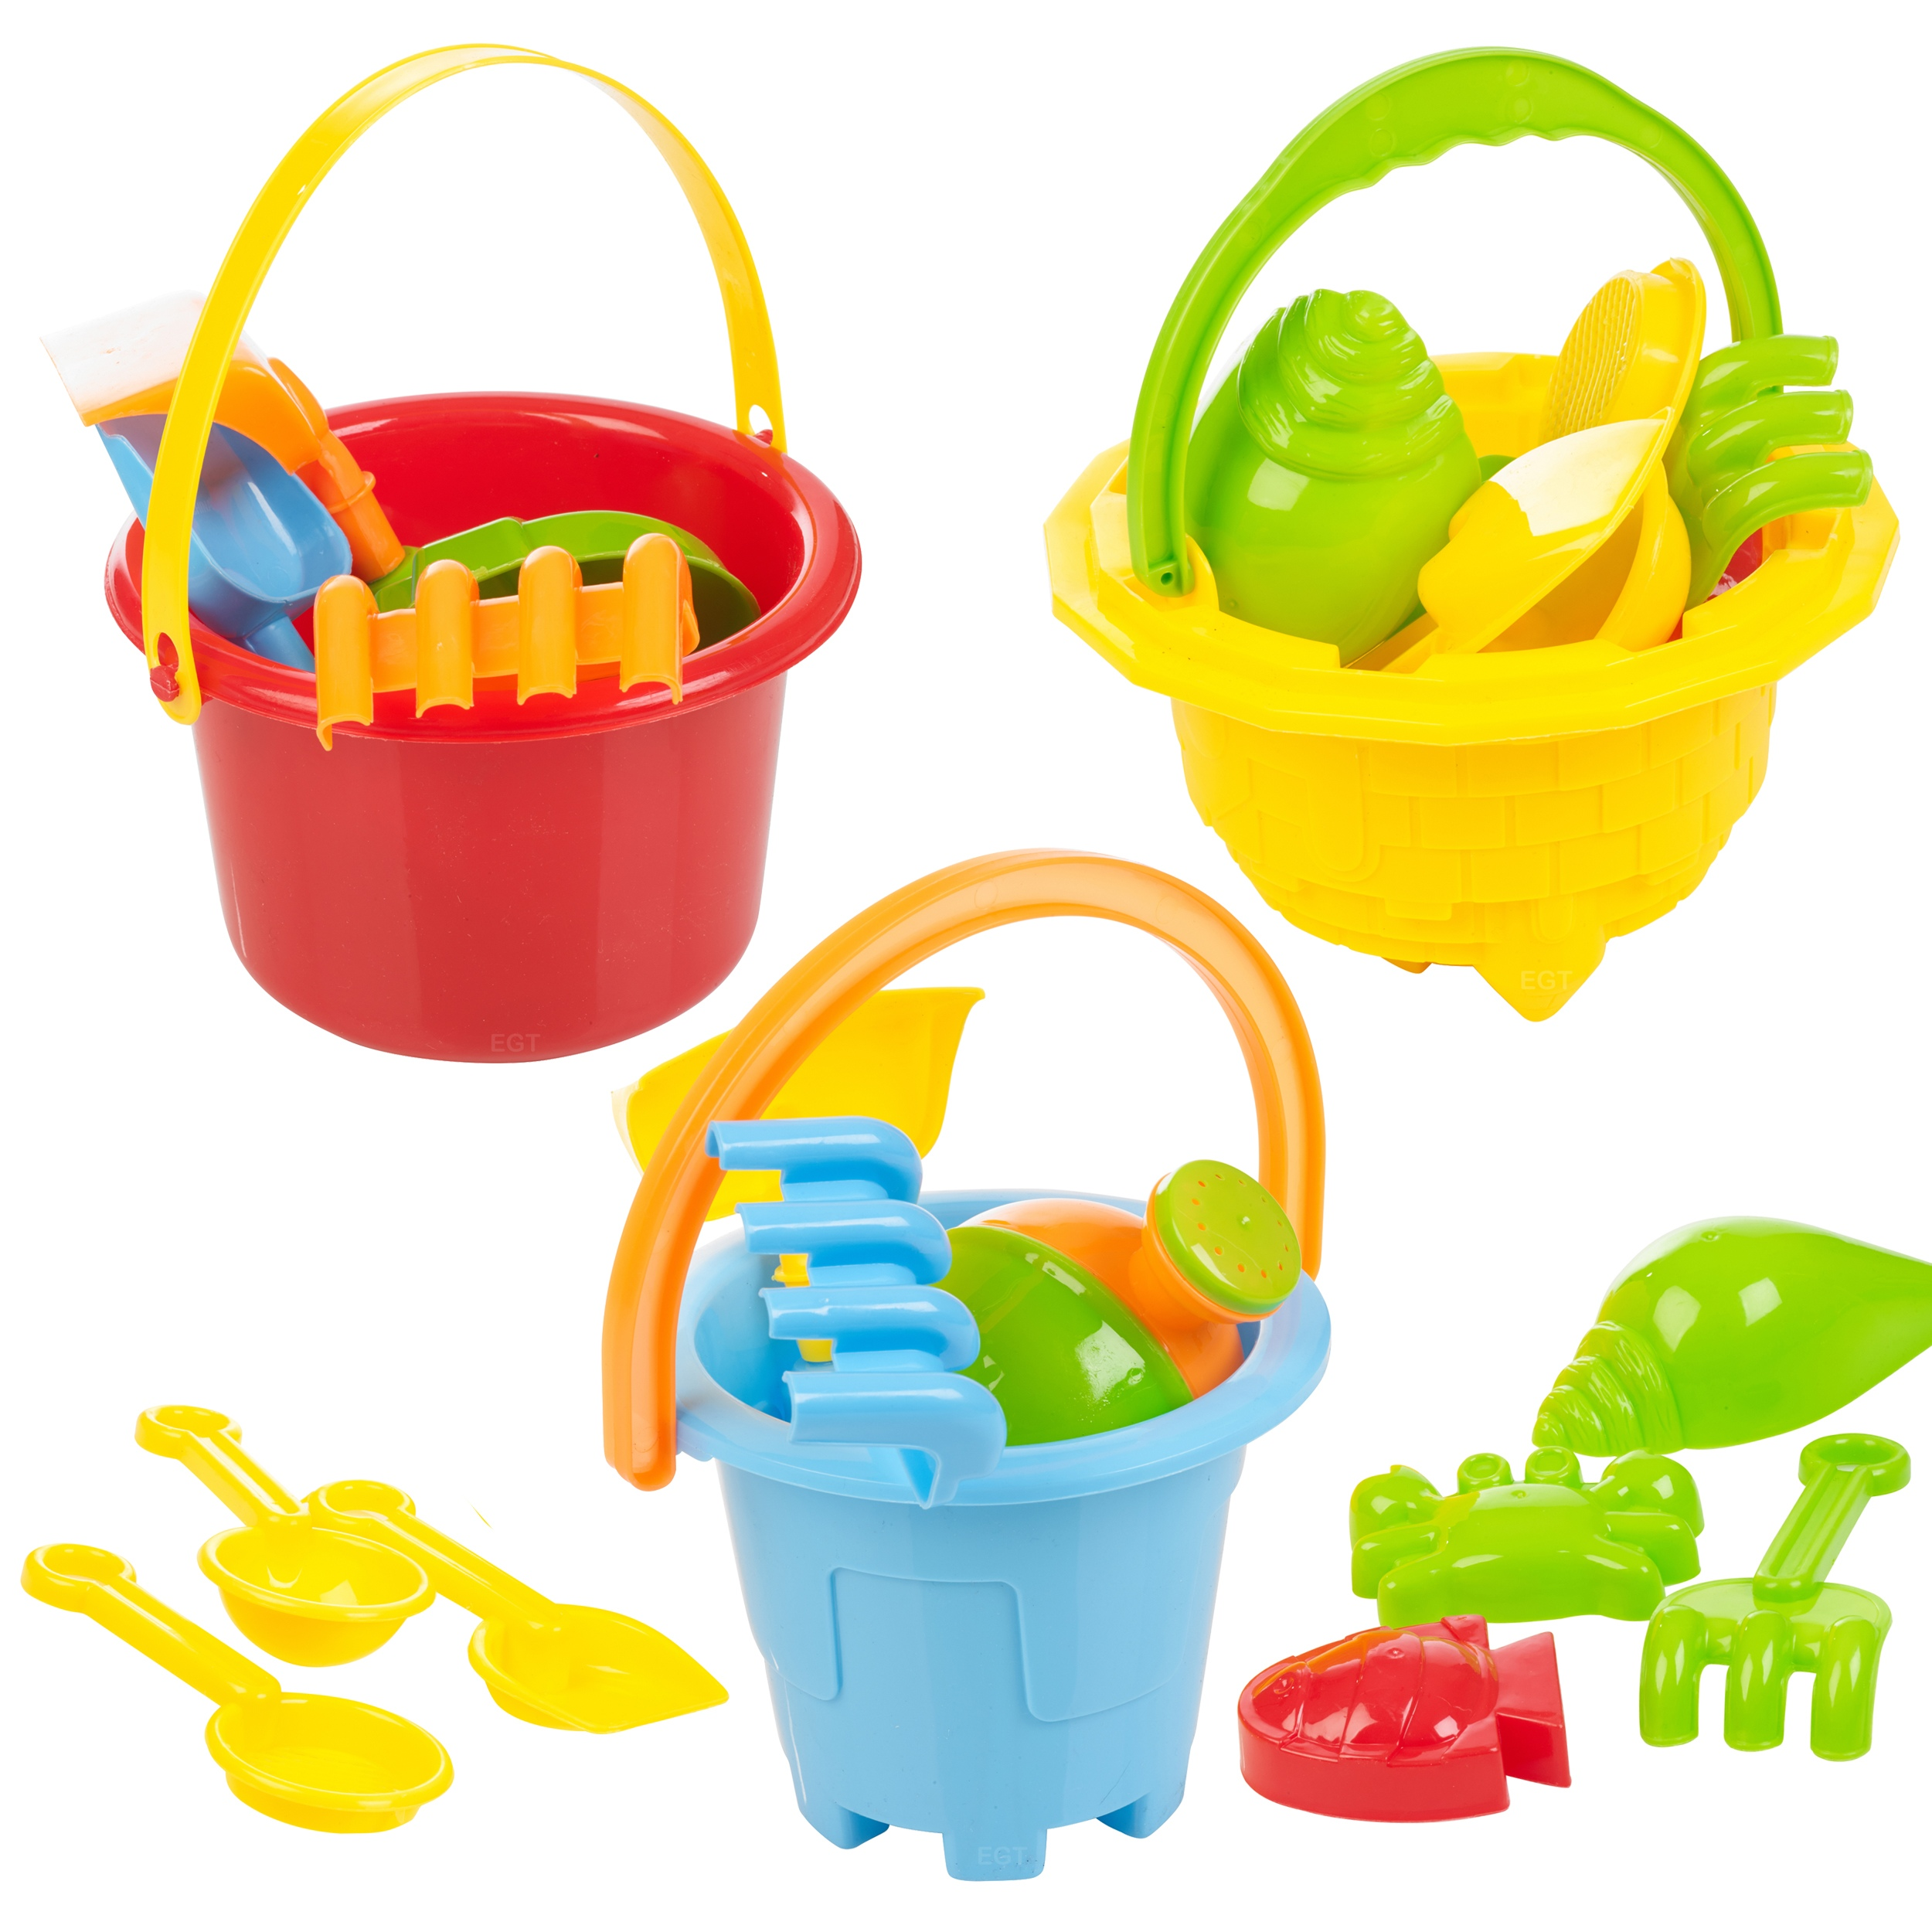 Details about Sand Castle Bucket amp; Spade Kids Beach Seaside Play Water